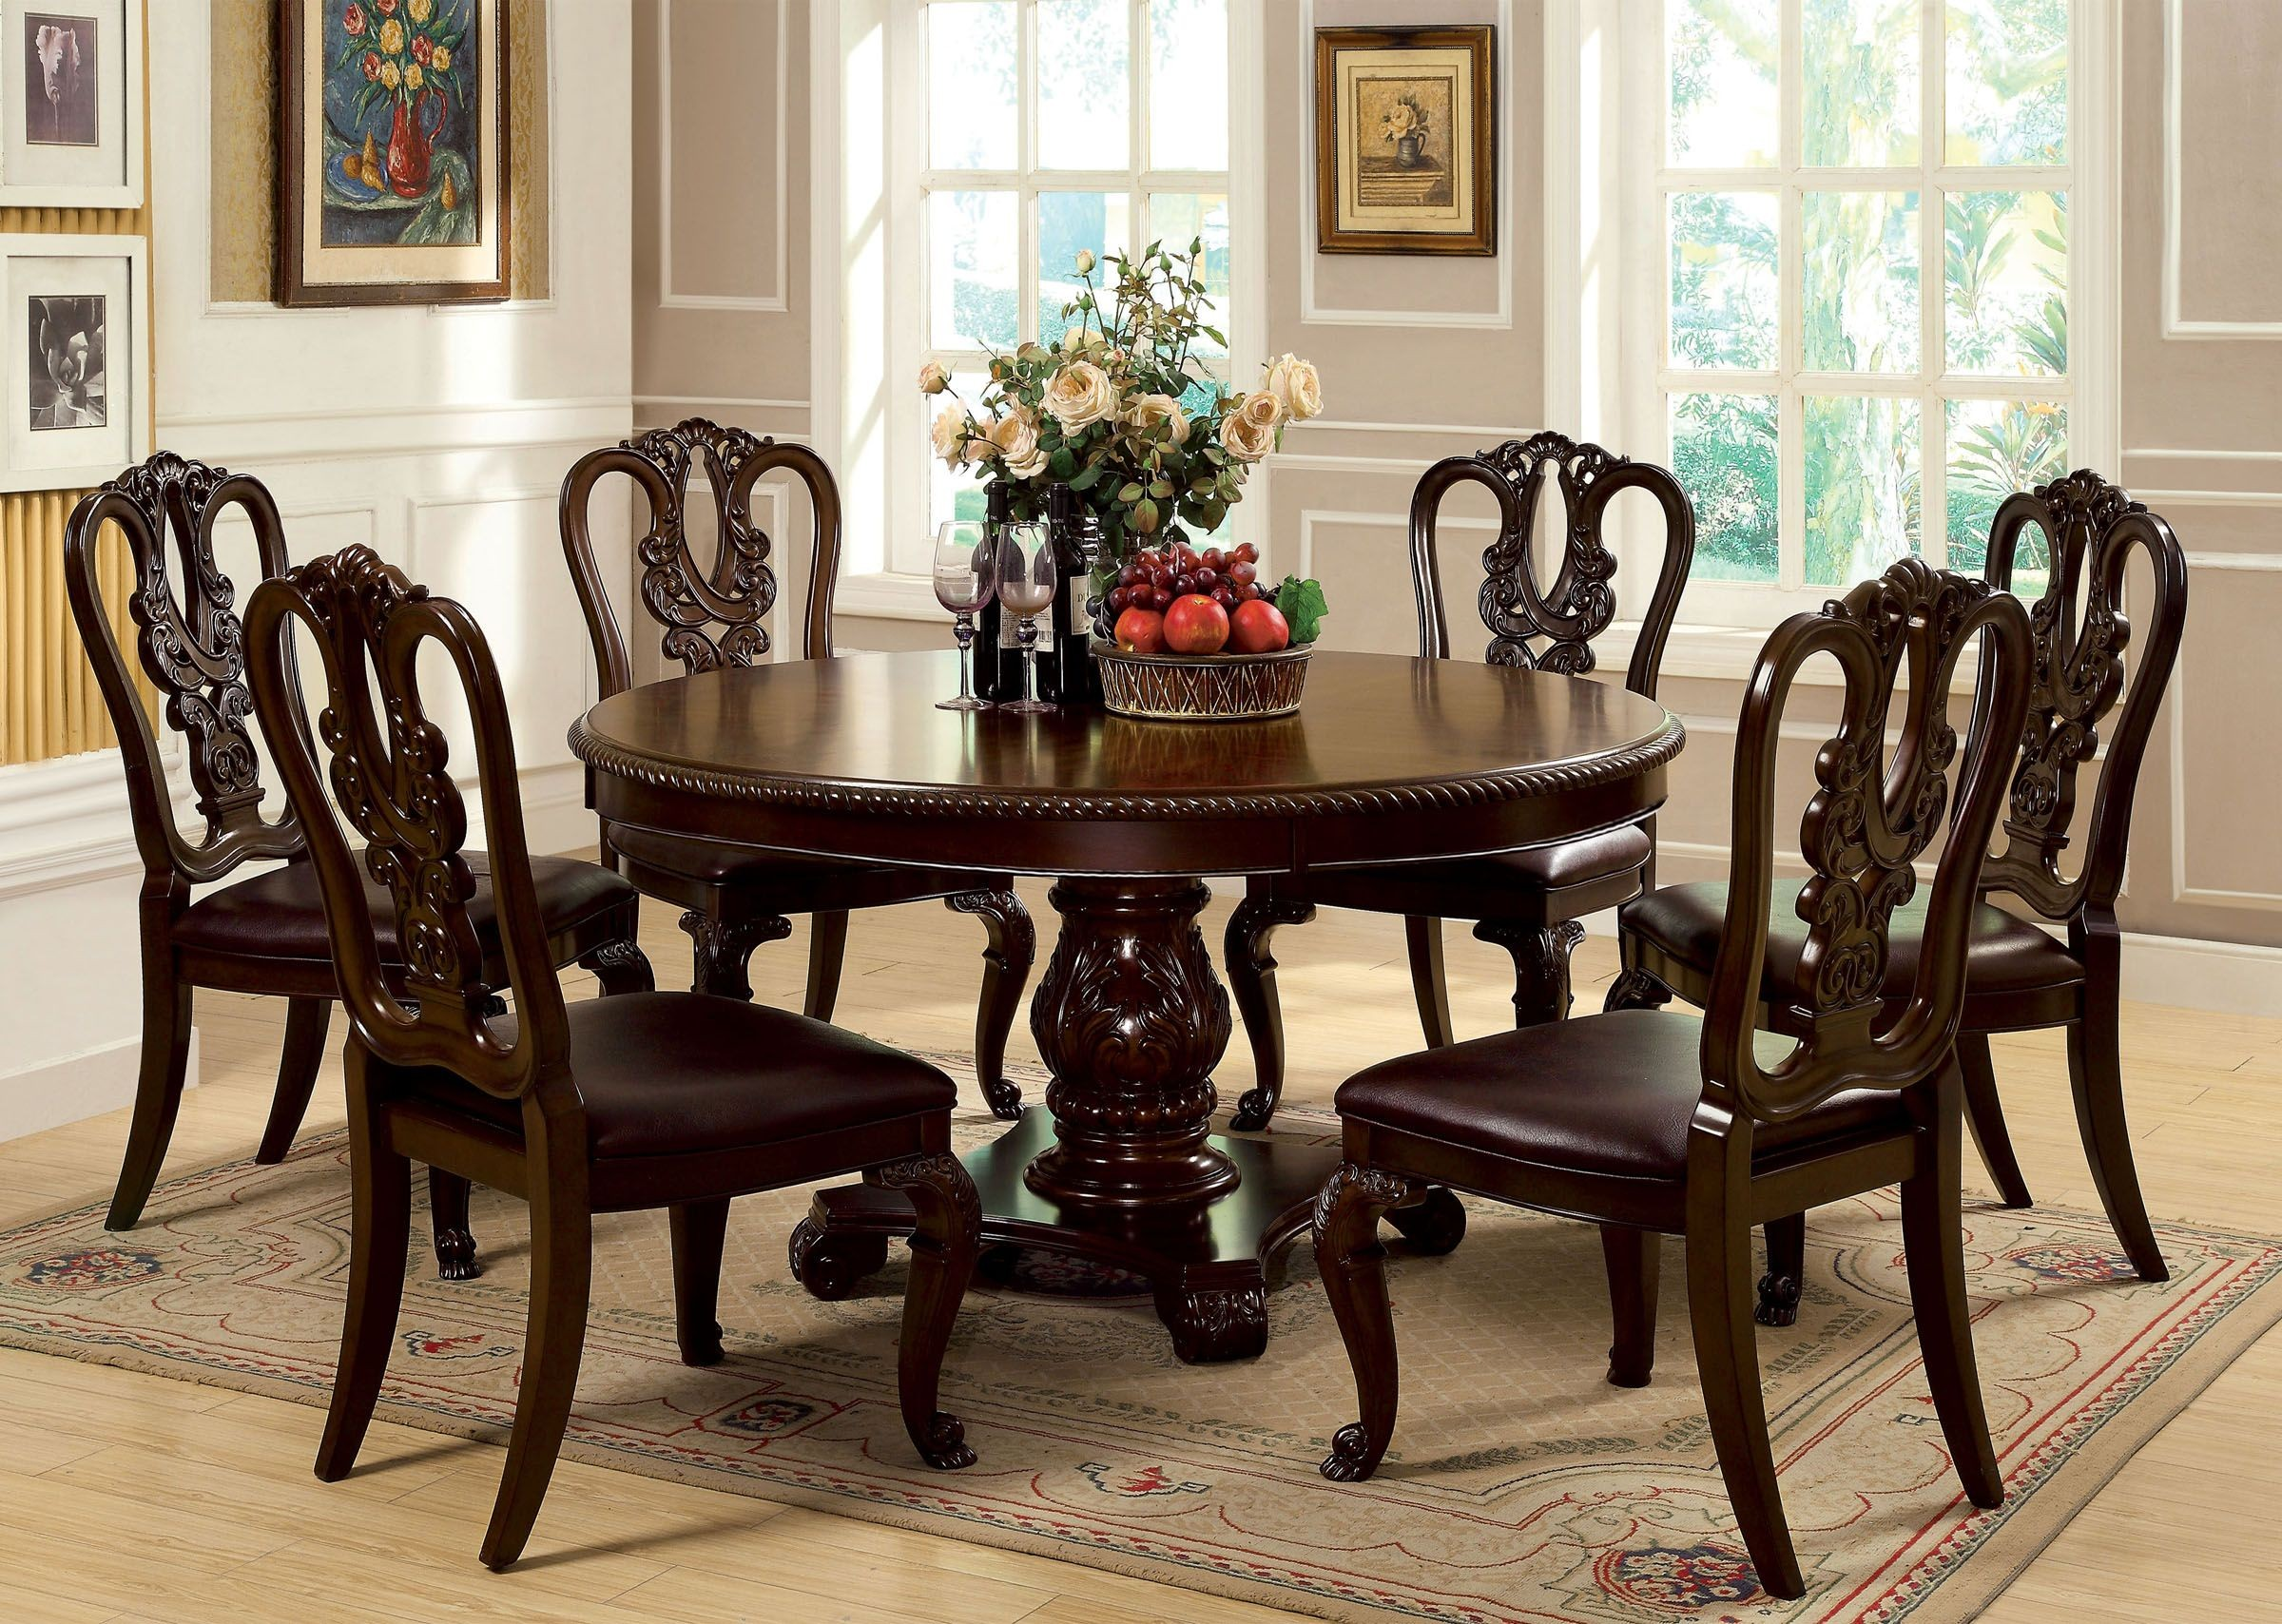 Bellagio brown cherry round pedestal dining room set from furniture of america cm3319rt table - Pc dining room set ...